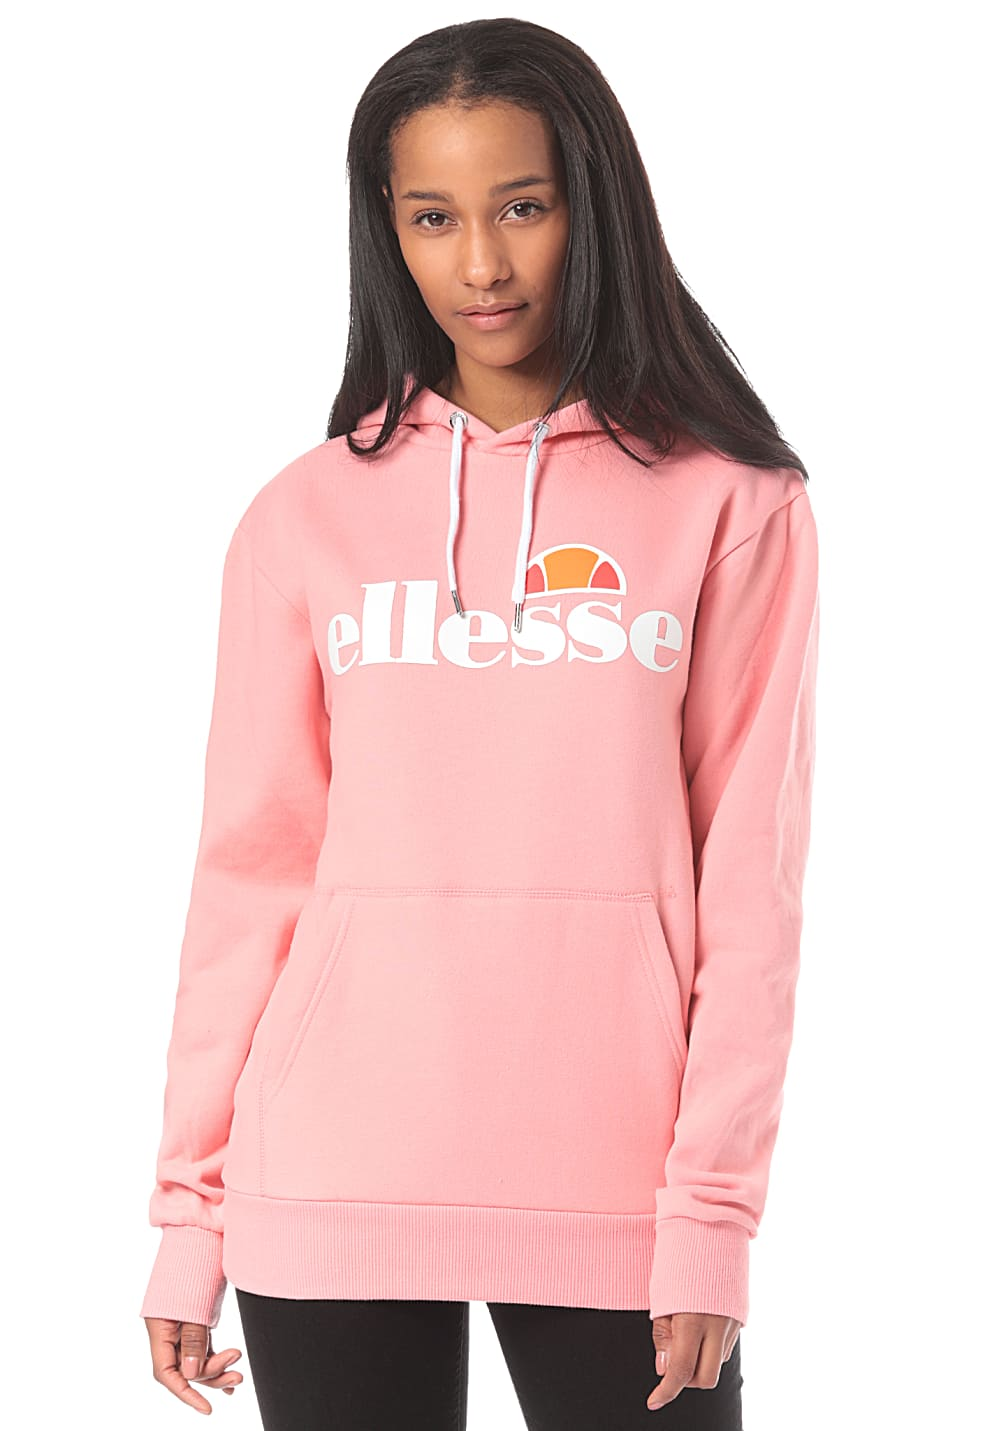 e06d1cff ELLESSE Torices - Hooded Sweatshirt for Women - Pink - Planet Sports